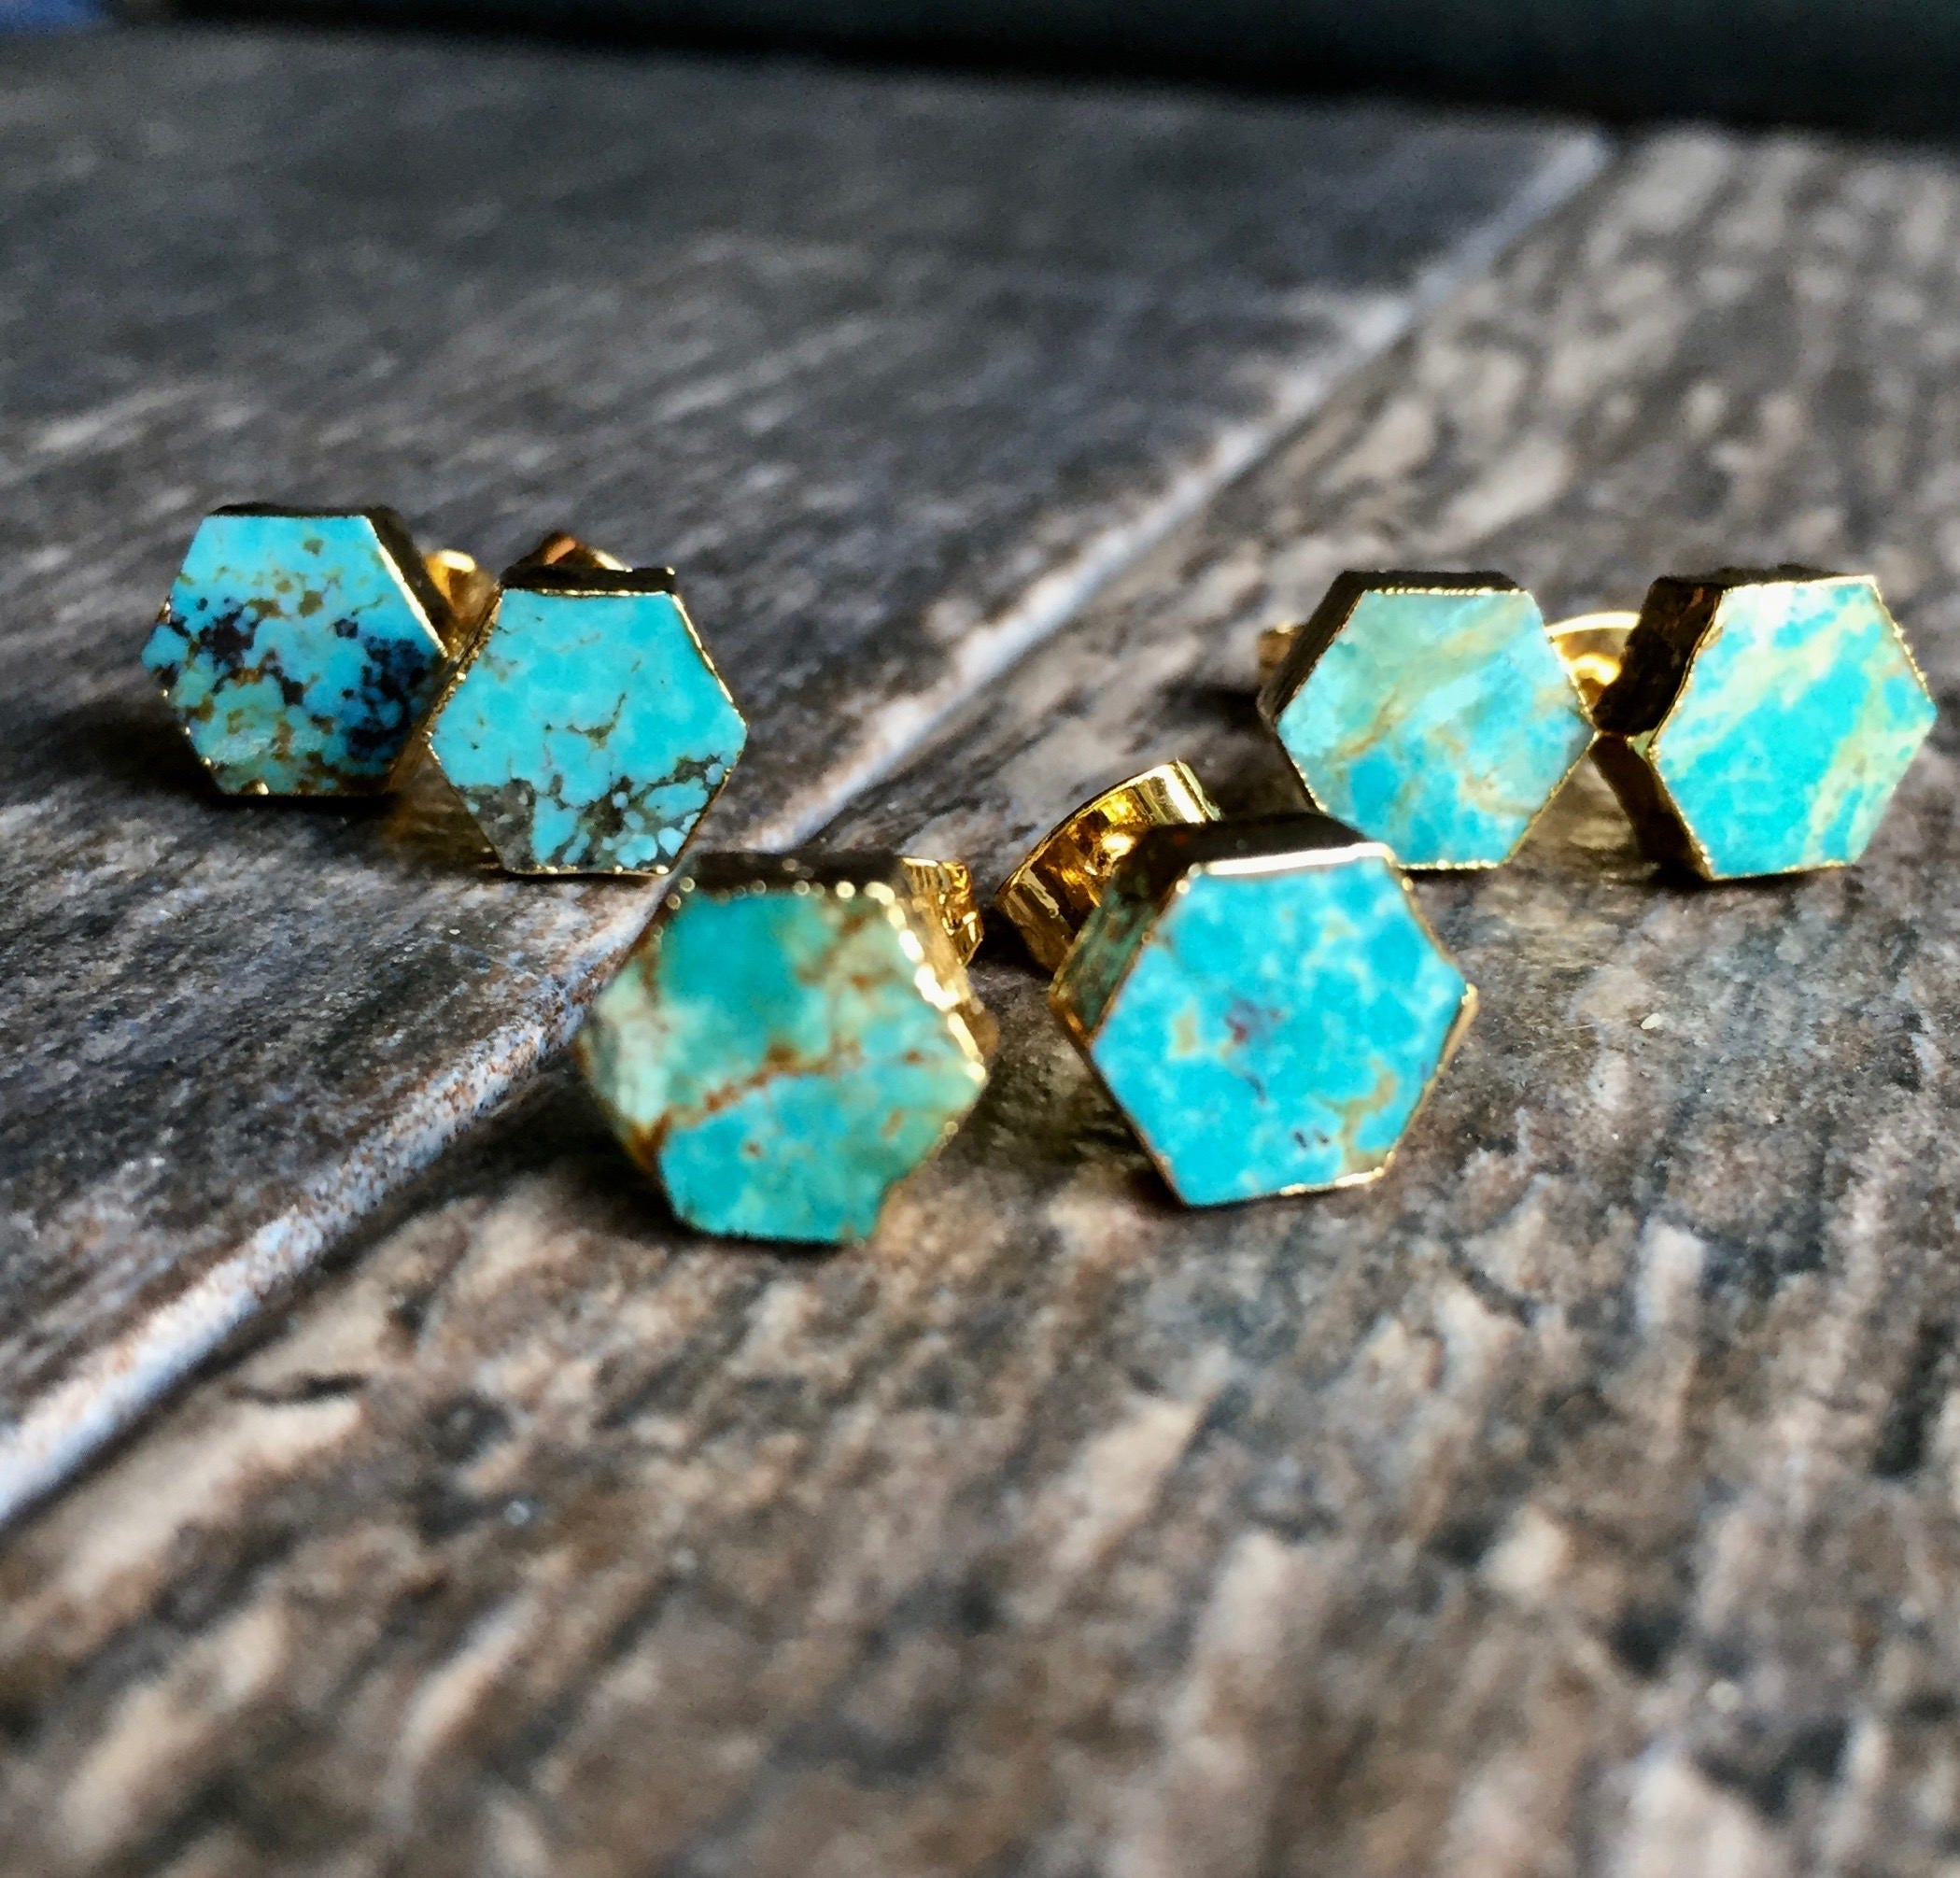 lollipop topaz london blue earrings gold mini turquoise ippolita stud